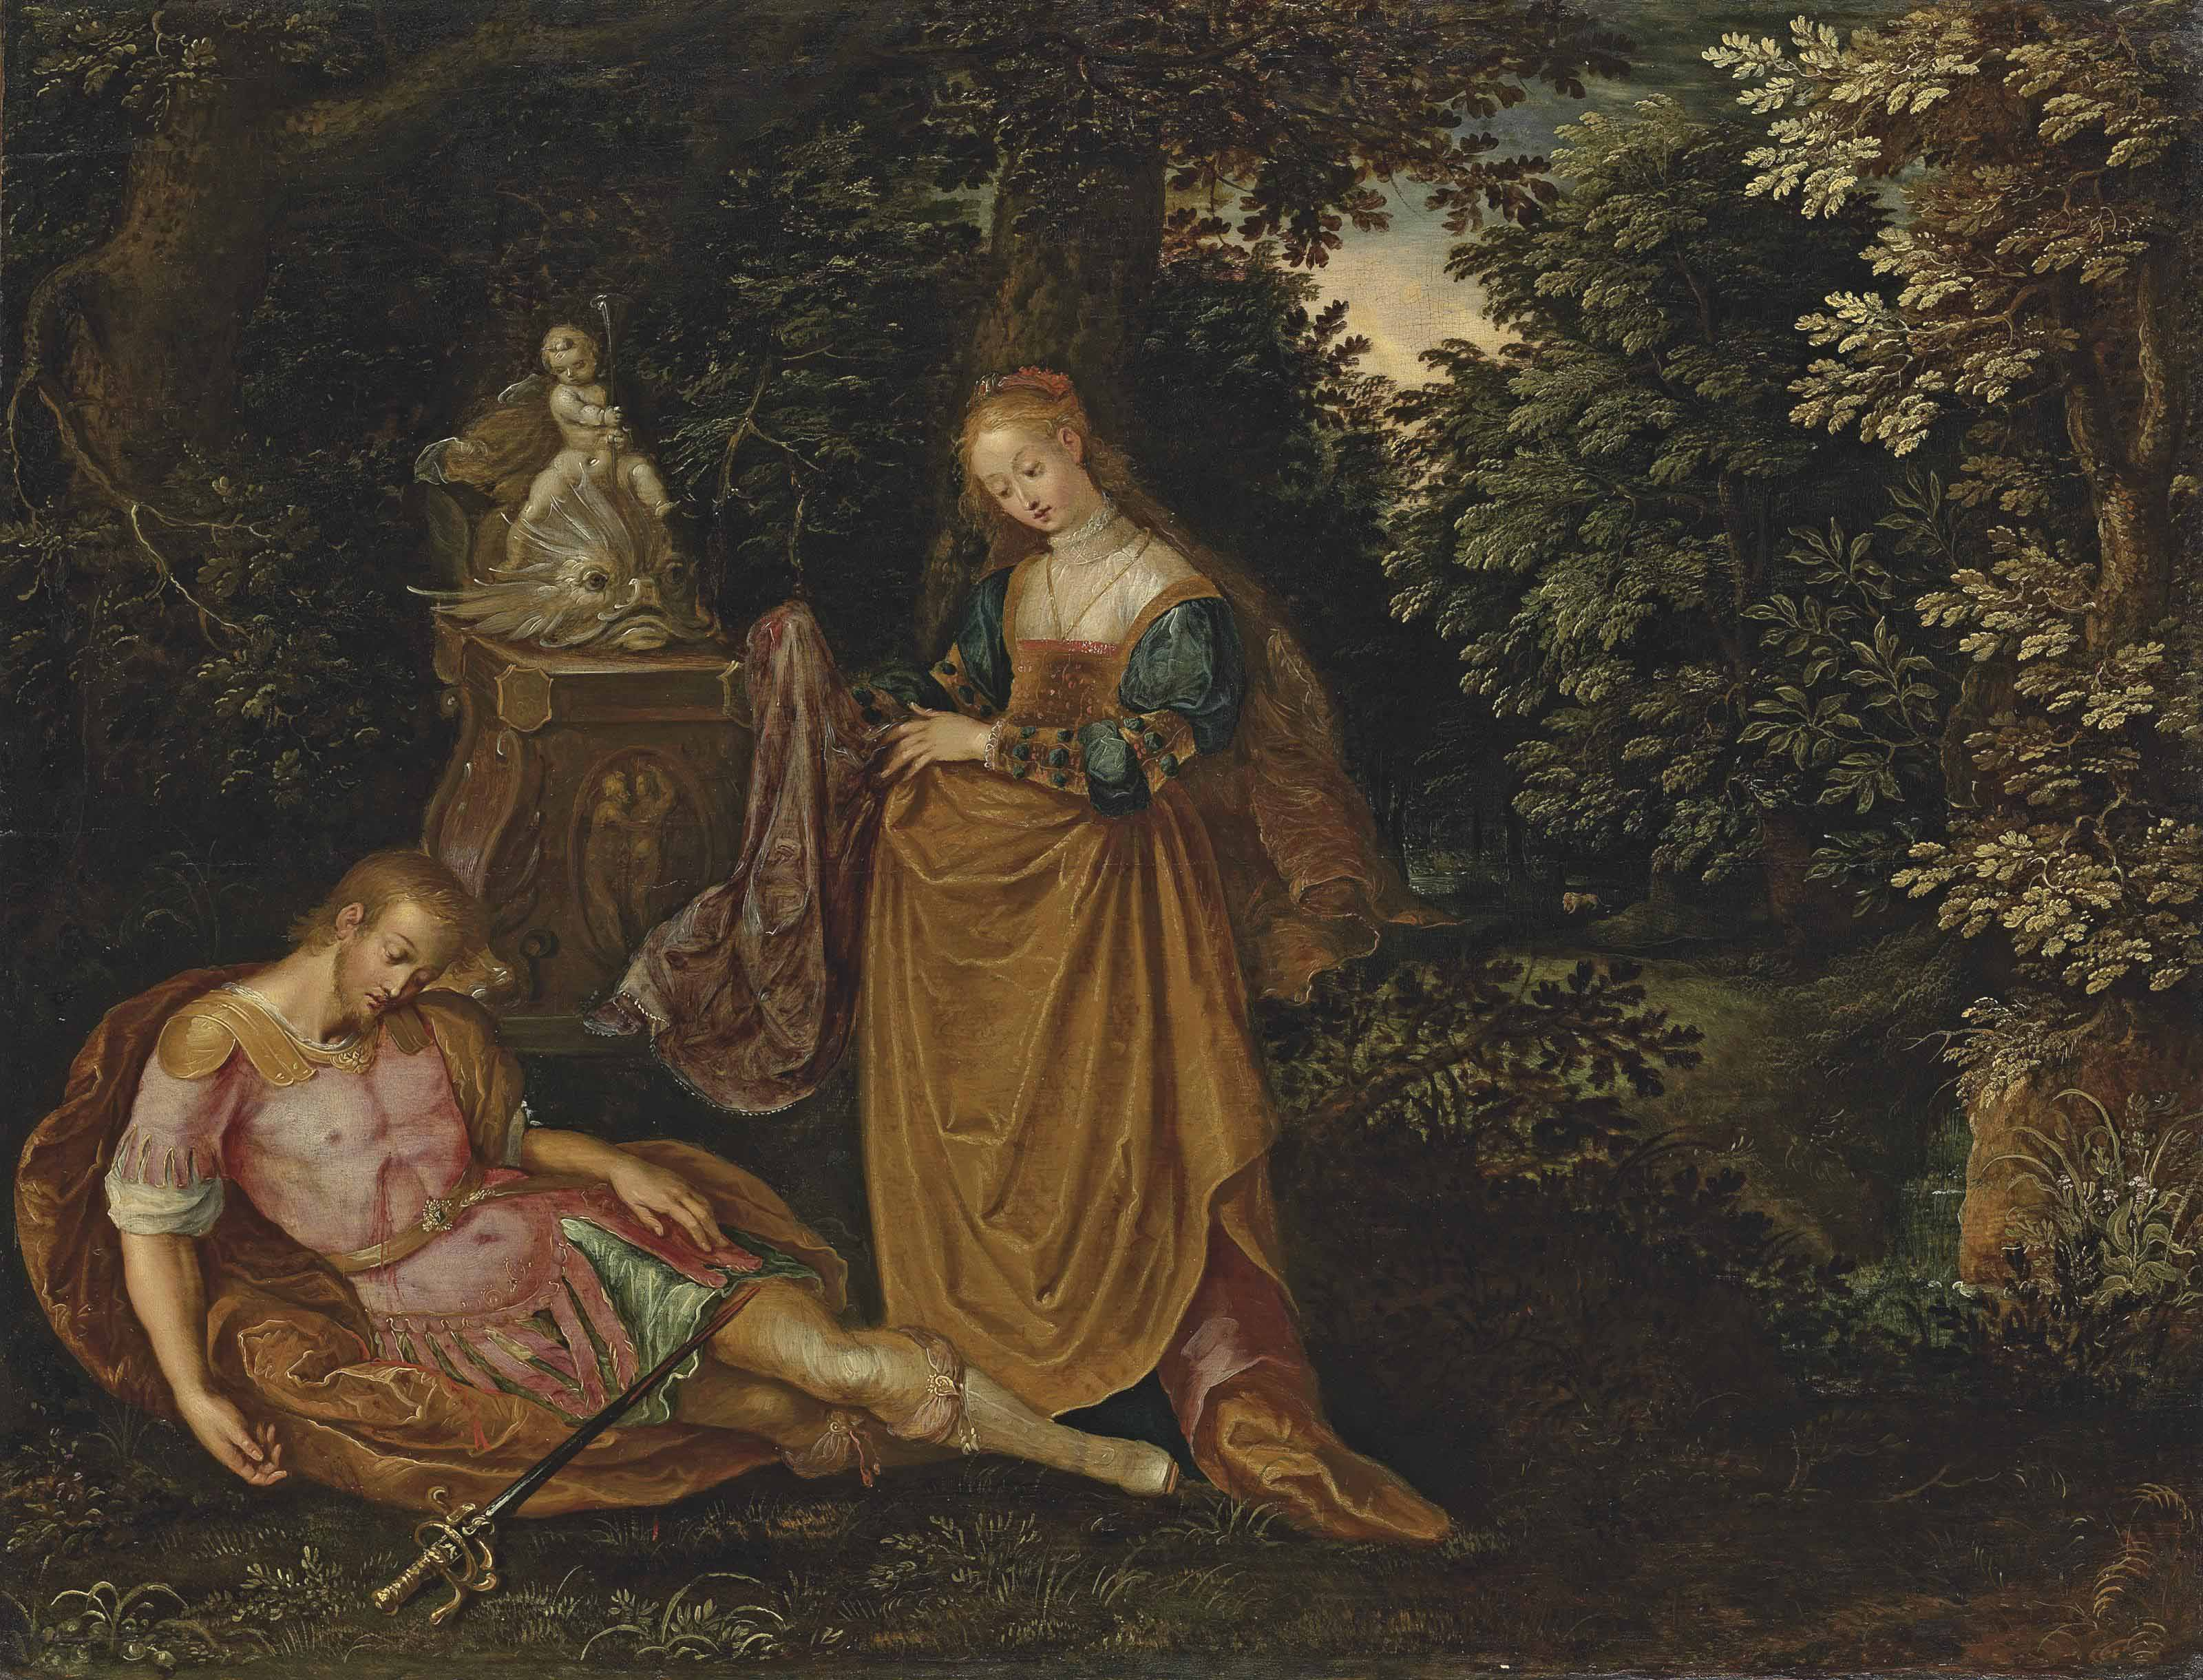 Pyramus and Thisbe in a wooded landscape